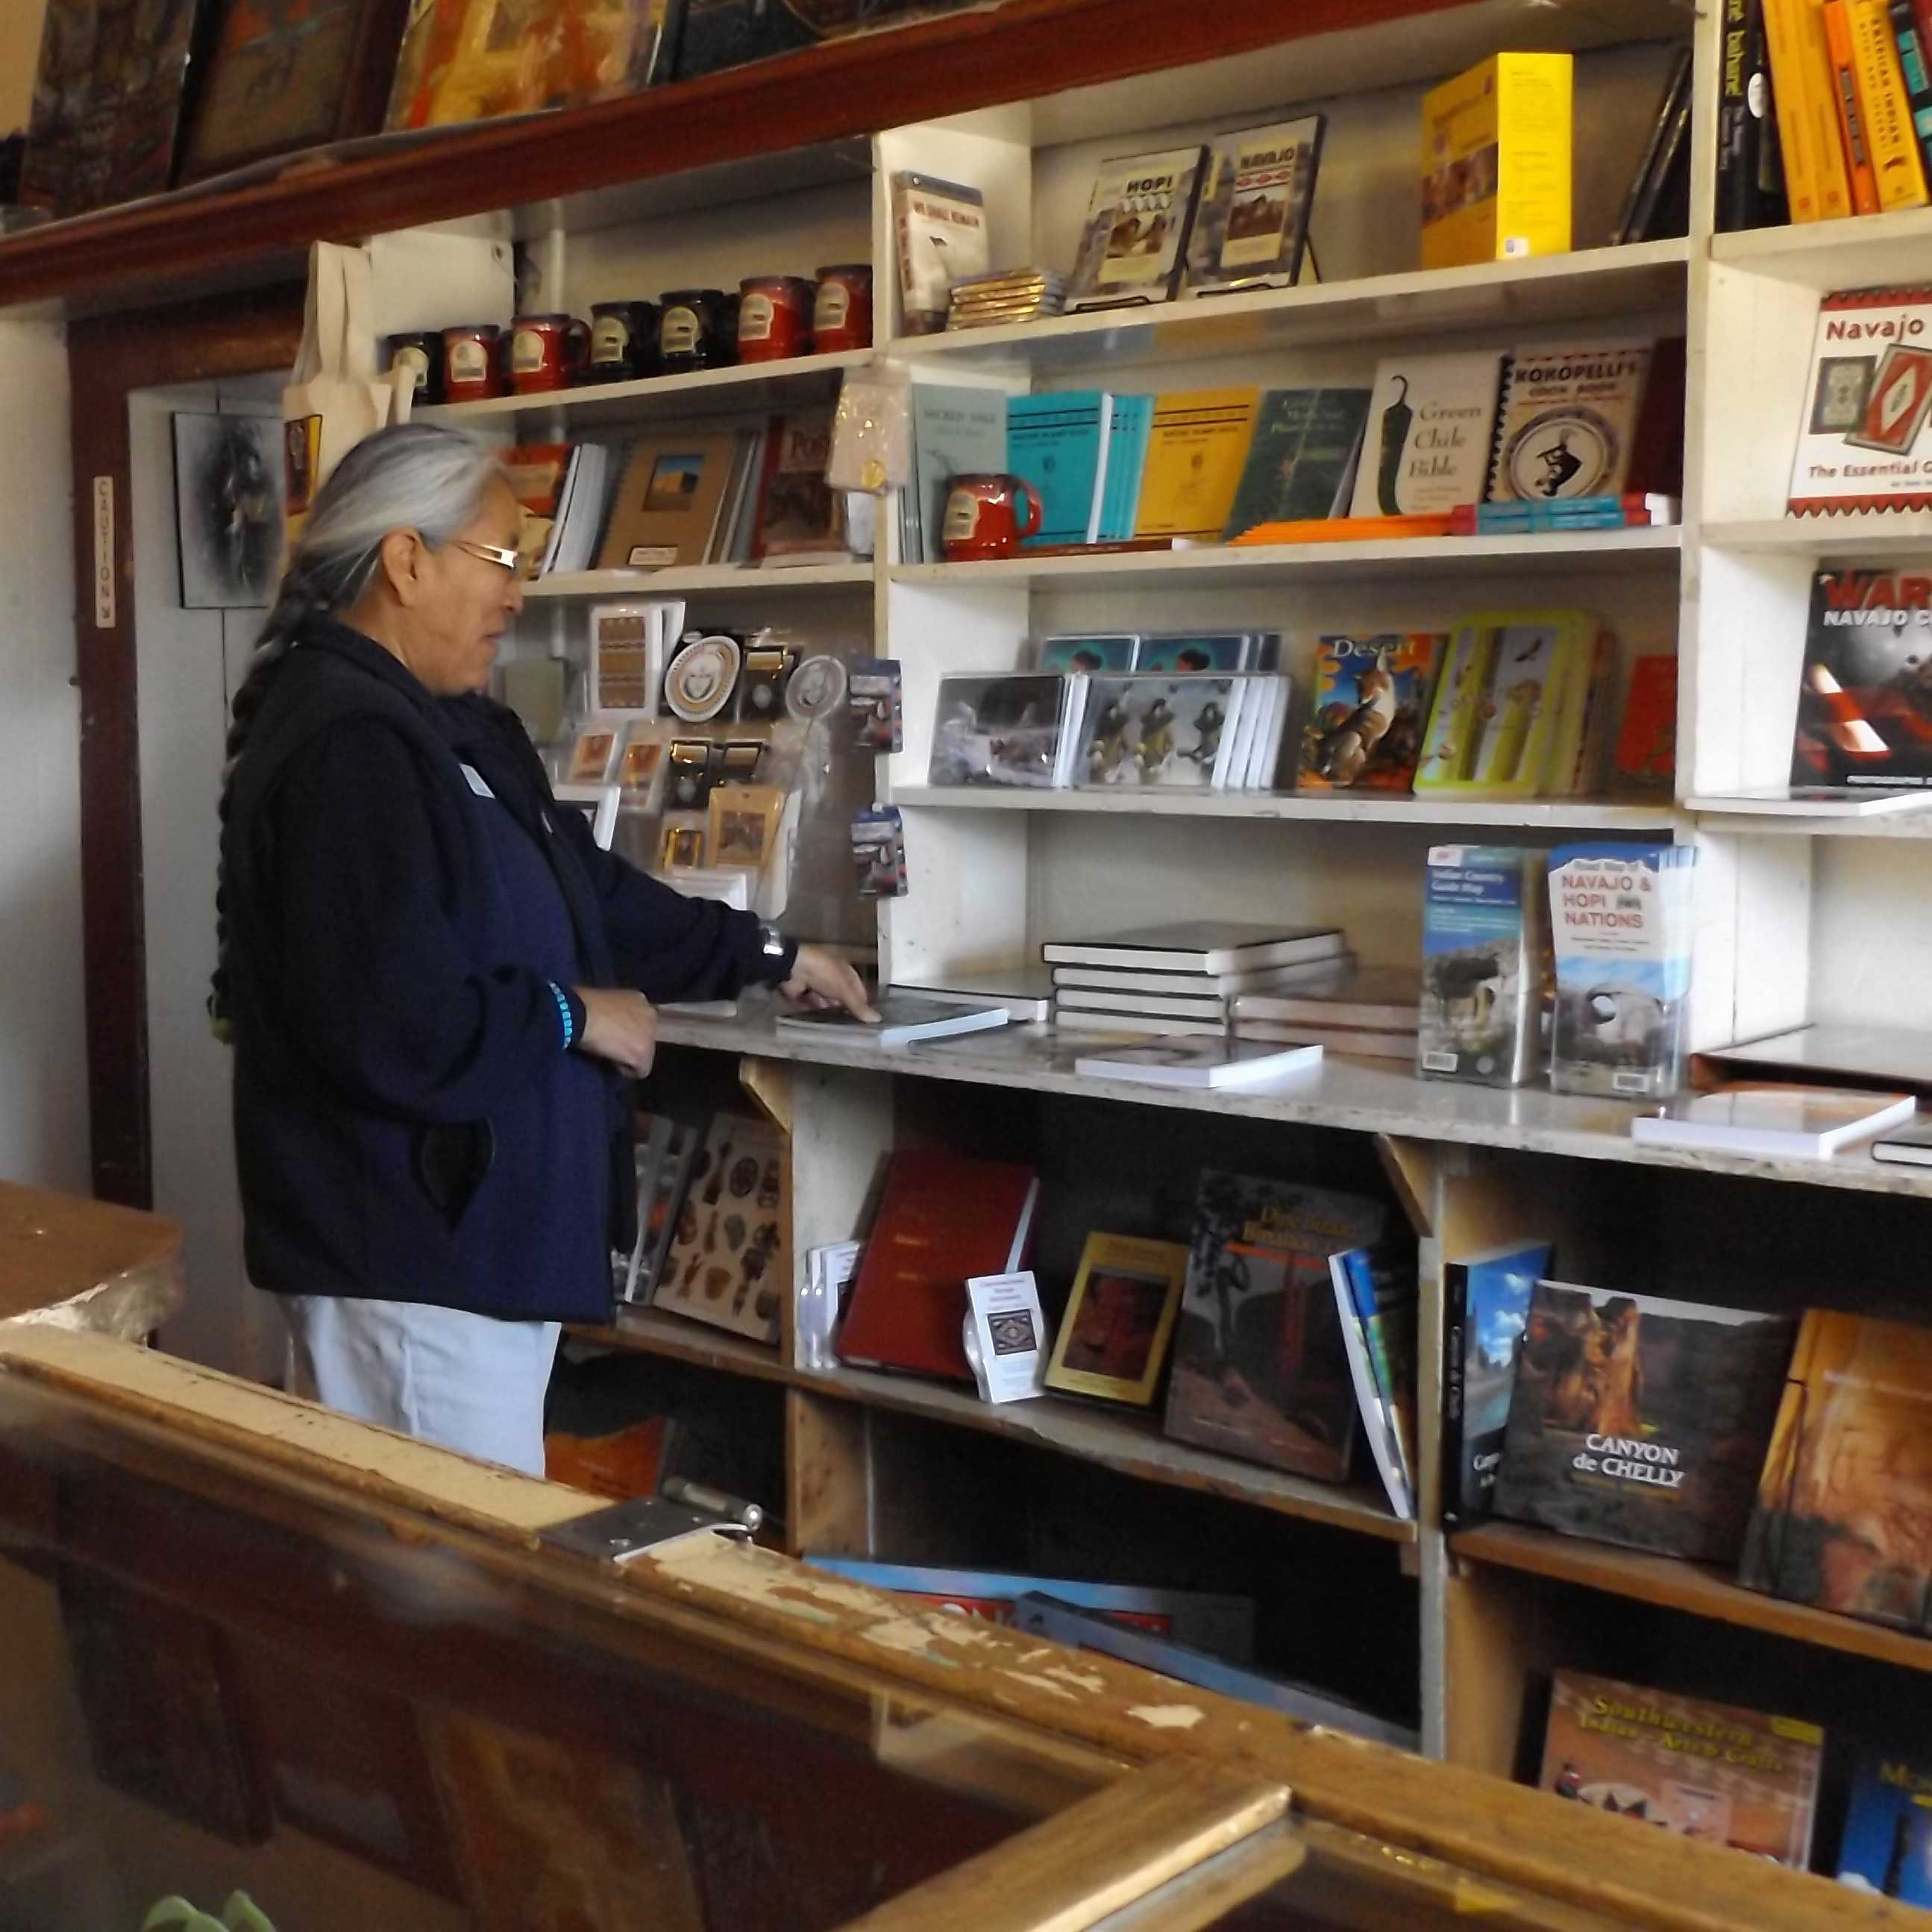 Park Store manager inspects new books